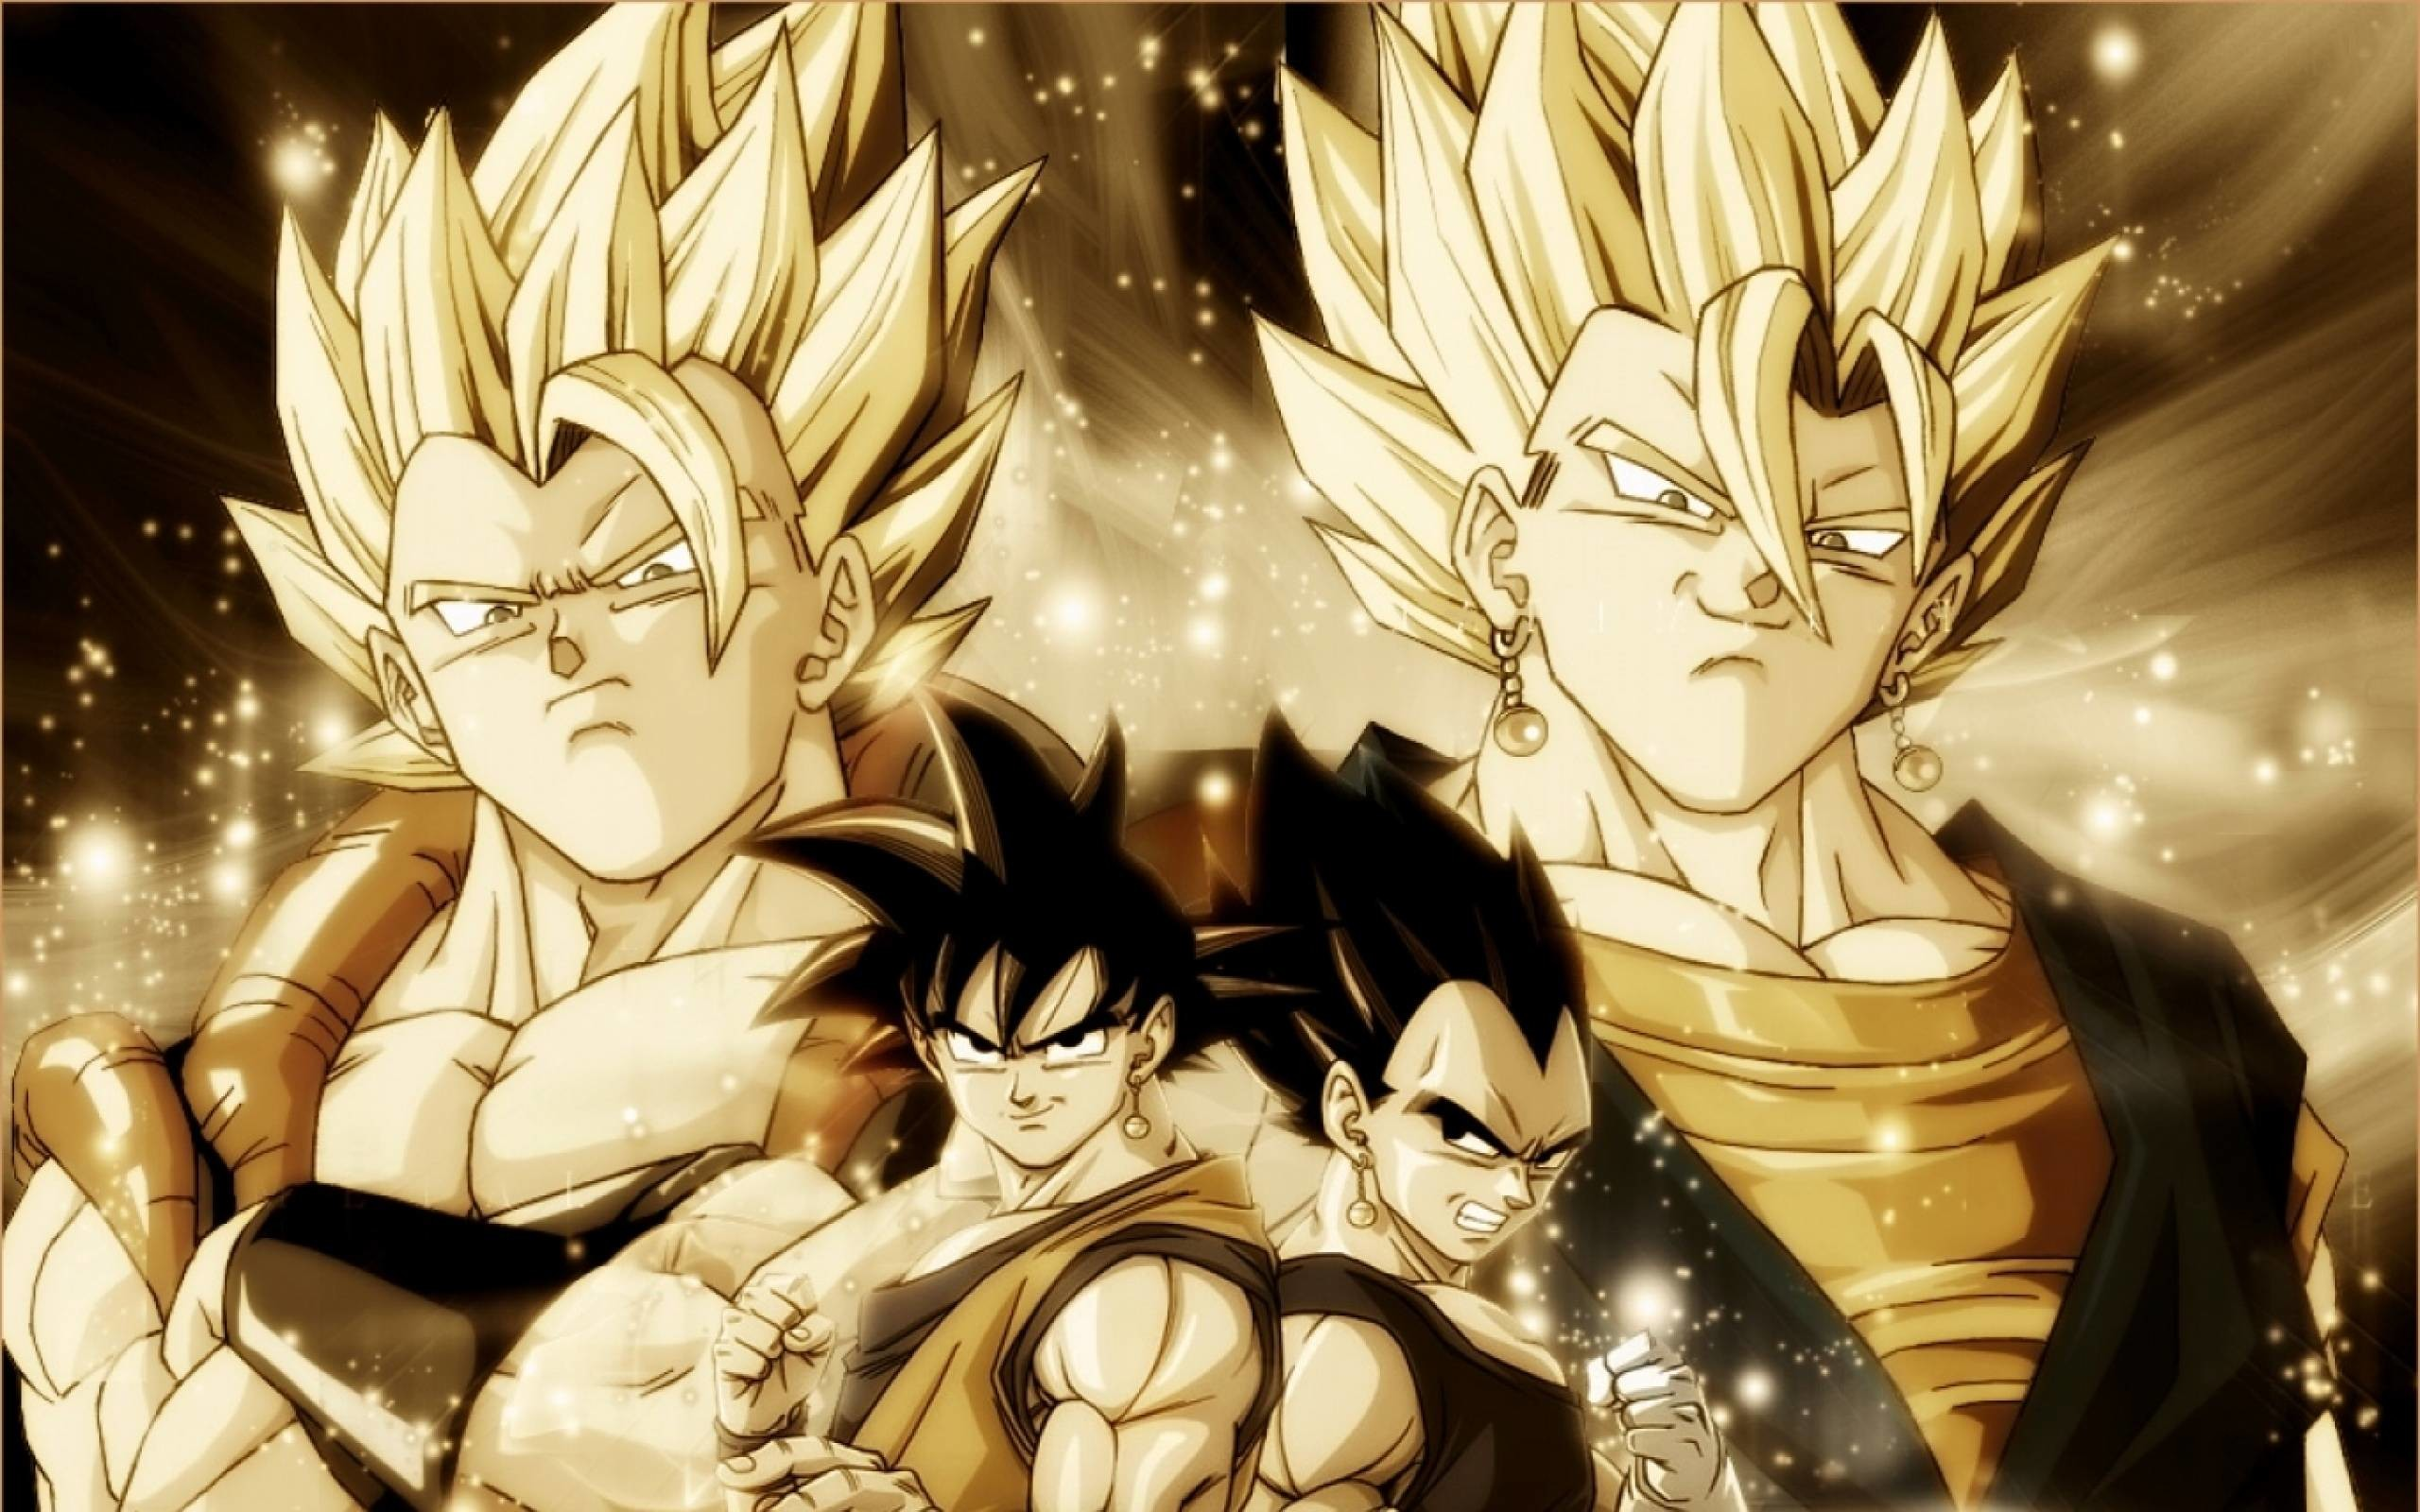 Most Inspiring Wallpaper High Resolution Dragon Ball Z - 950955-free-download-dragon-ball-z-hd-wallpapers-2560x1600-high-resolution  You Should Have_121198.jpg